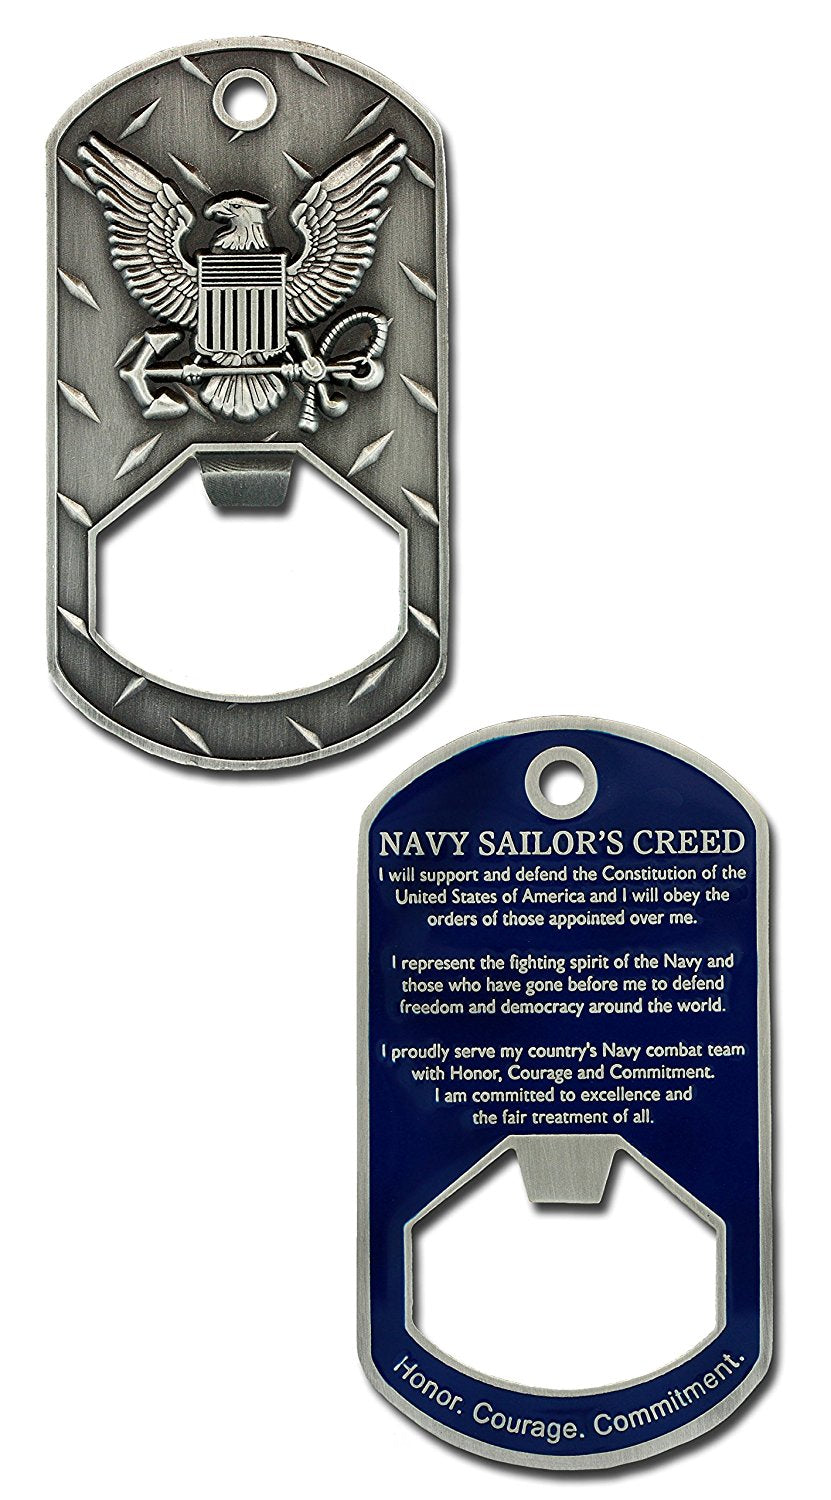 Navy Dog Tag Bottle Opener: Sailor's Creed